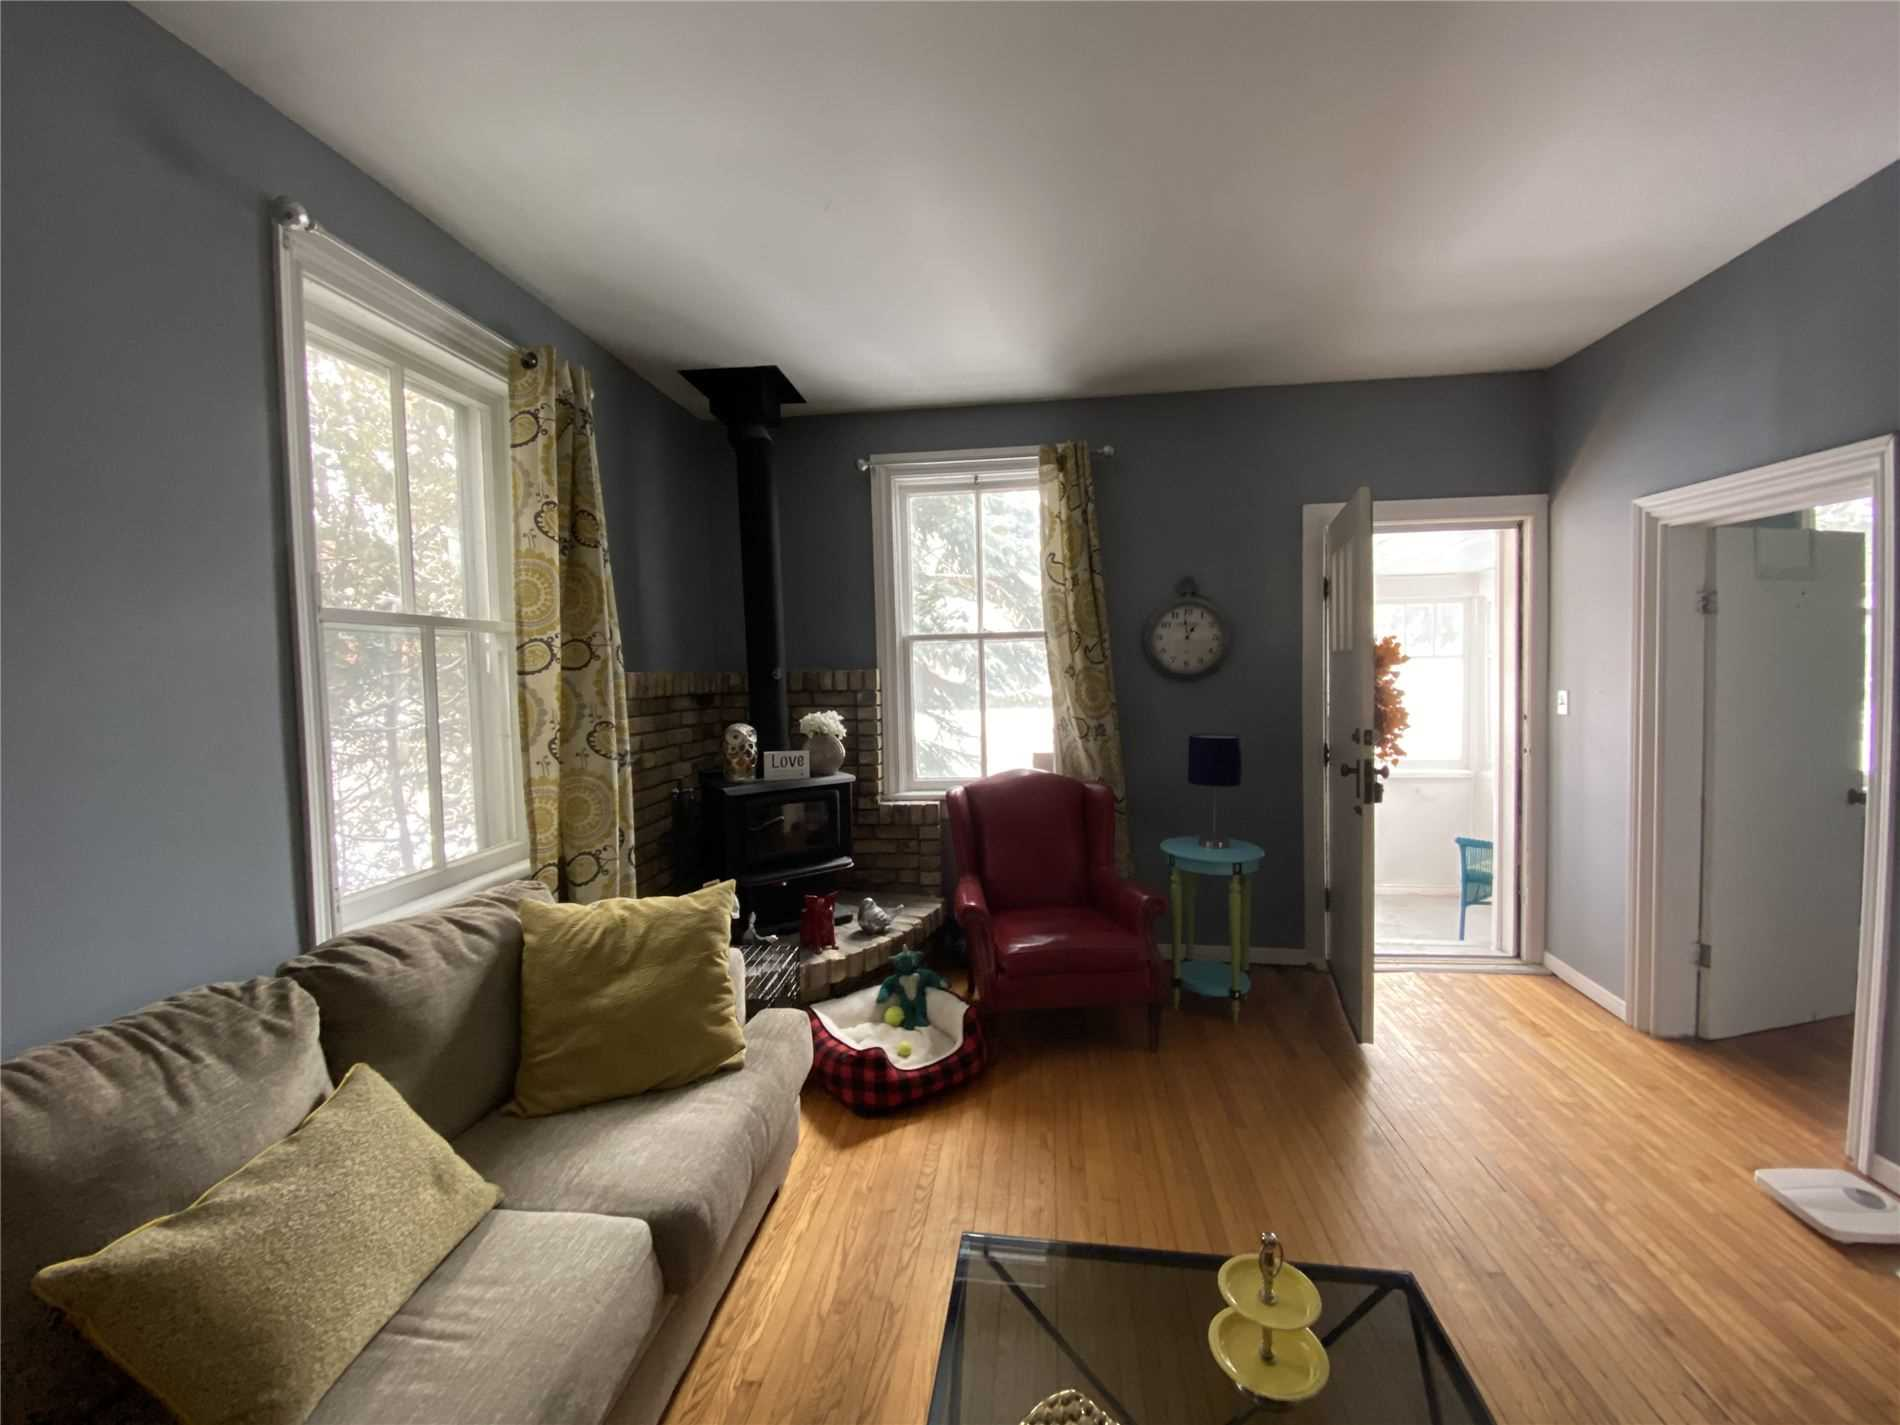 Image 2 of 8 showing inside of 2 Bedroom Detached Bungalow house for sale at 88 Delhi St, Guelph N1E4J7